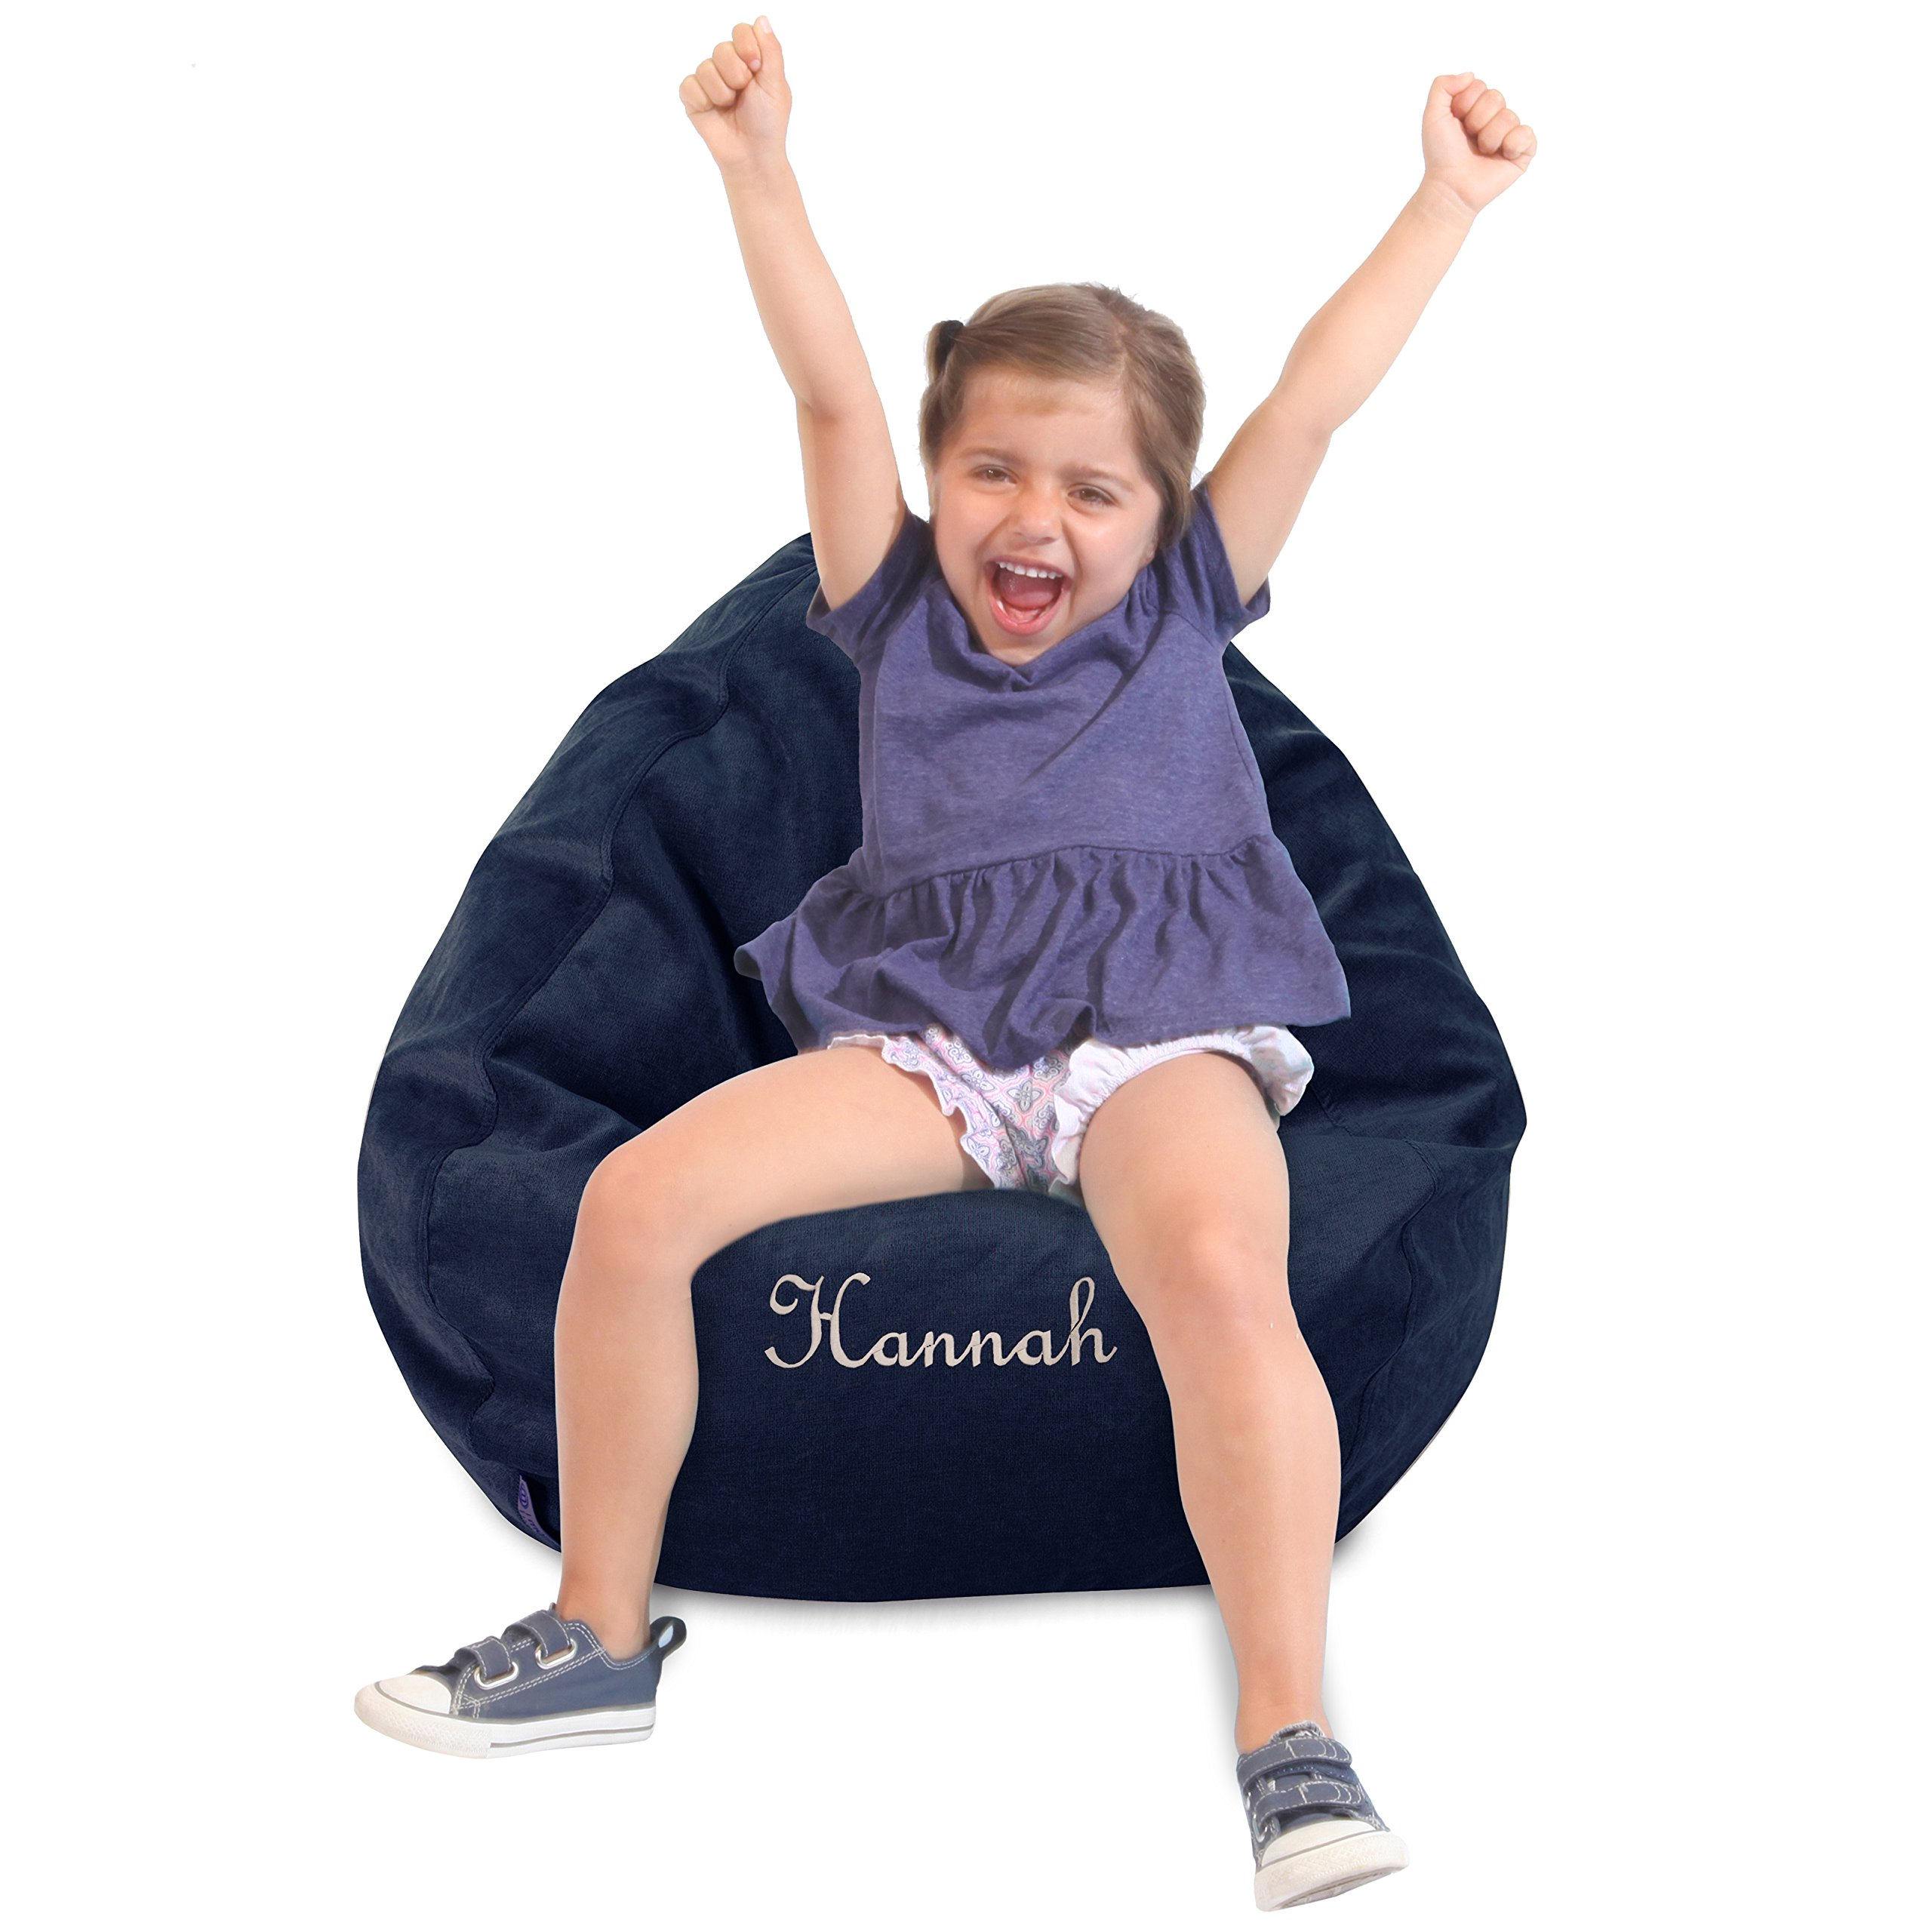 Personalized Majestic Home Goods Classic Bean Bag Chair - Villa Giant Classic Bean Bags for Small Adults and Kids, 28 x 28 x 22 Inches (Navy)